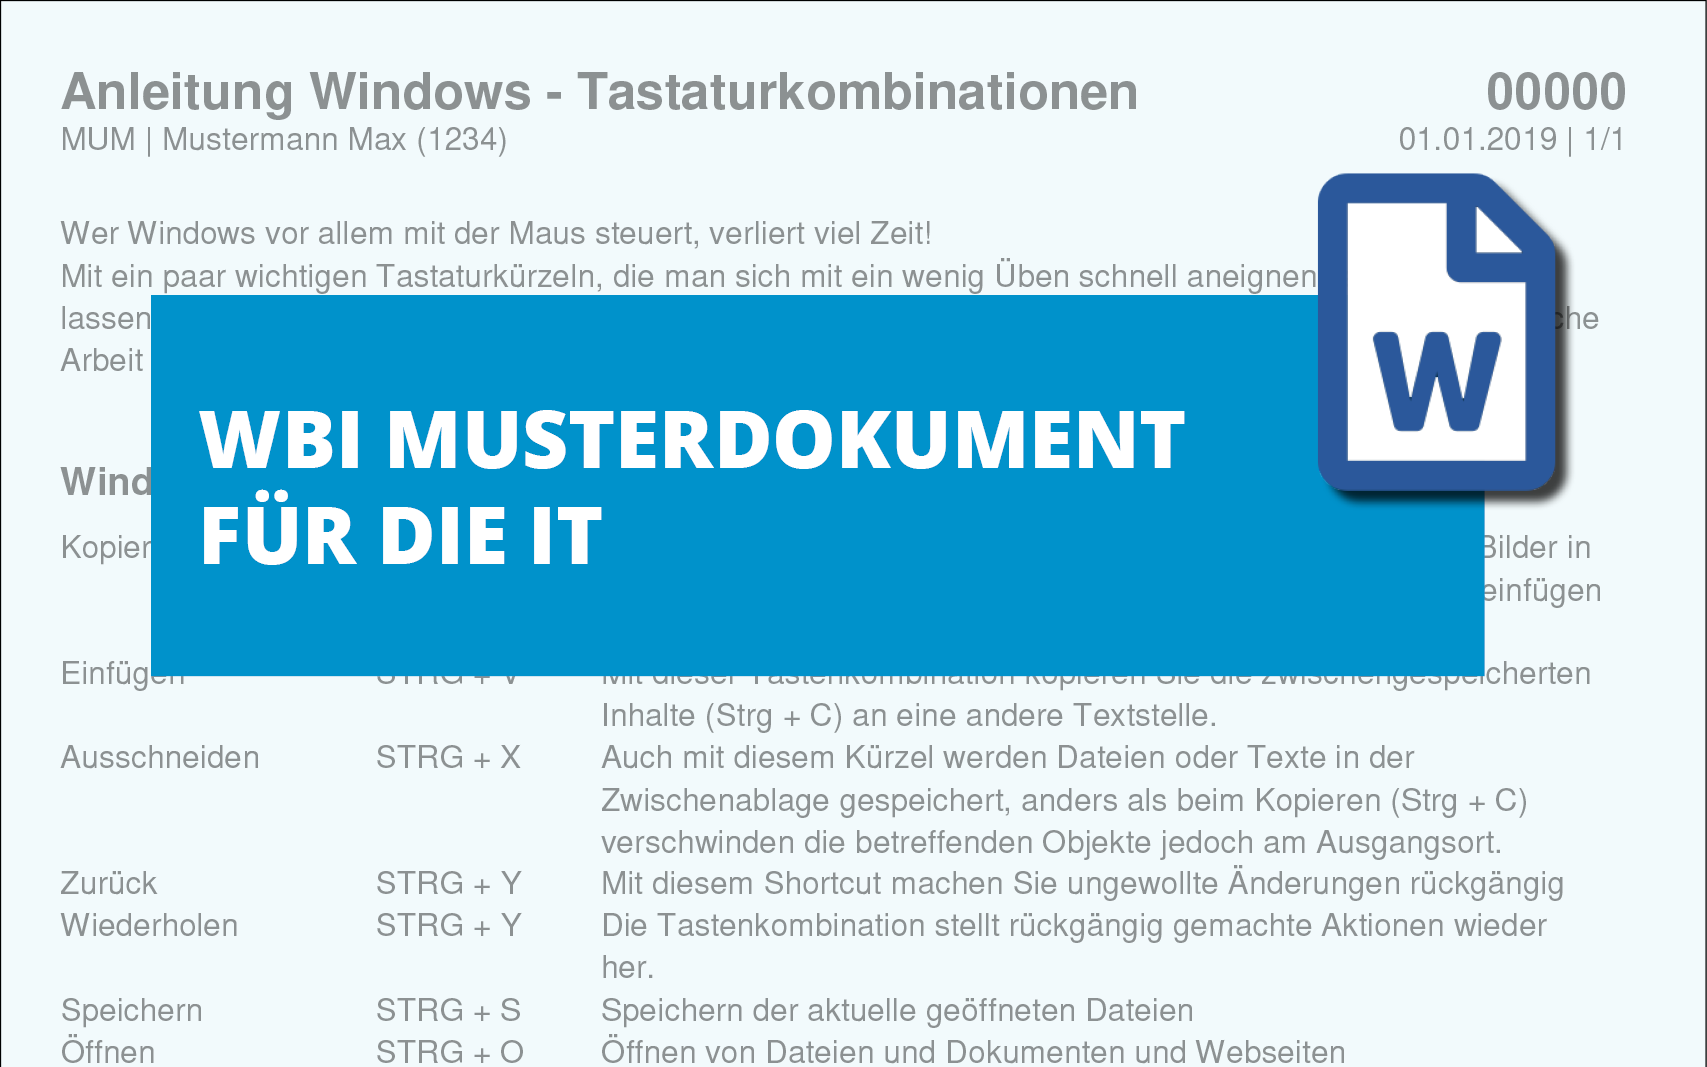 anleitung-windows-tastaturkombinationen